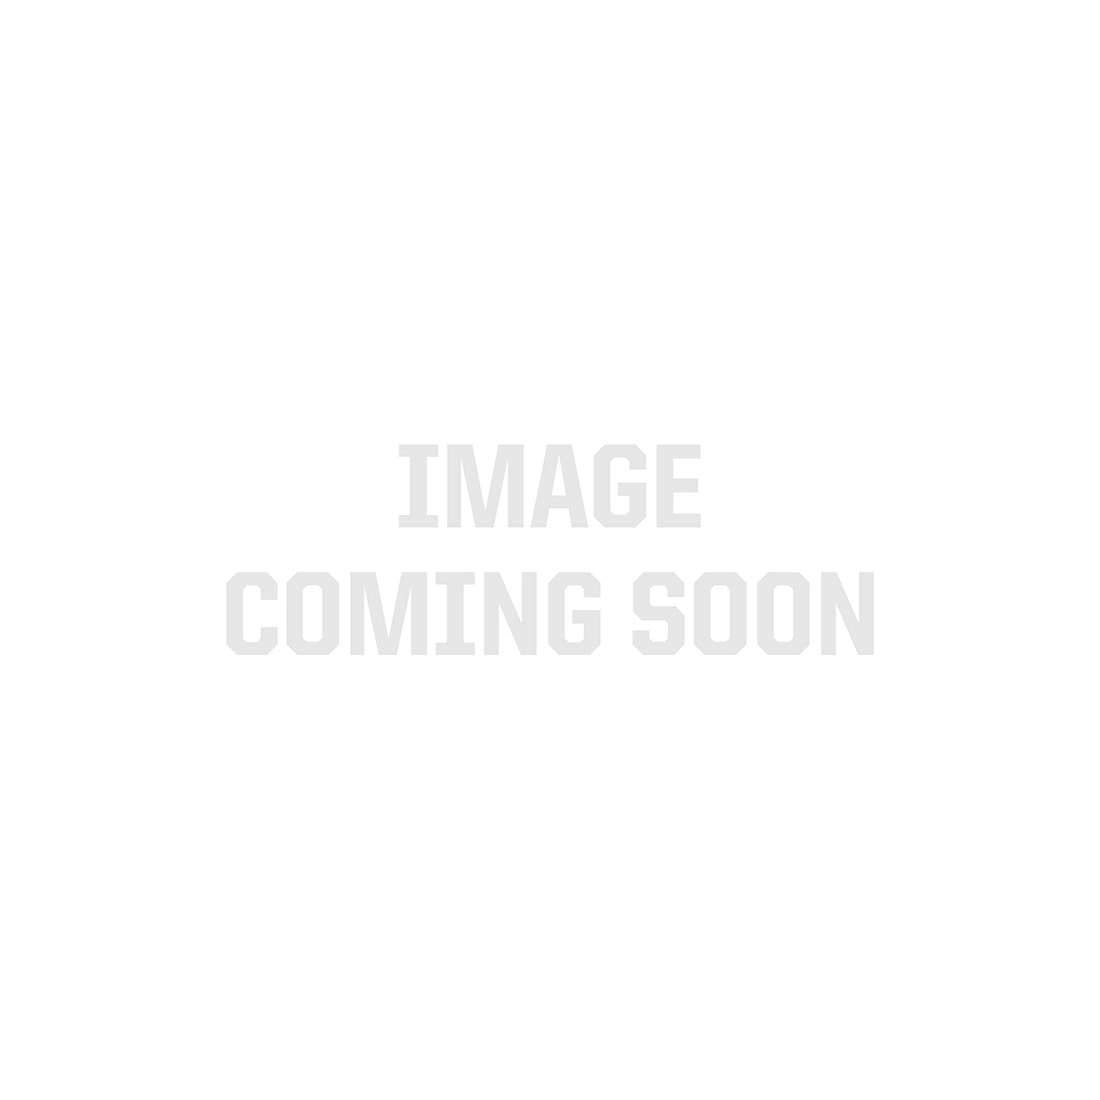 Leviton 6613 Sureslide Magnetic Dimmer; Single Pole or 3-Way (Multi-location)